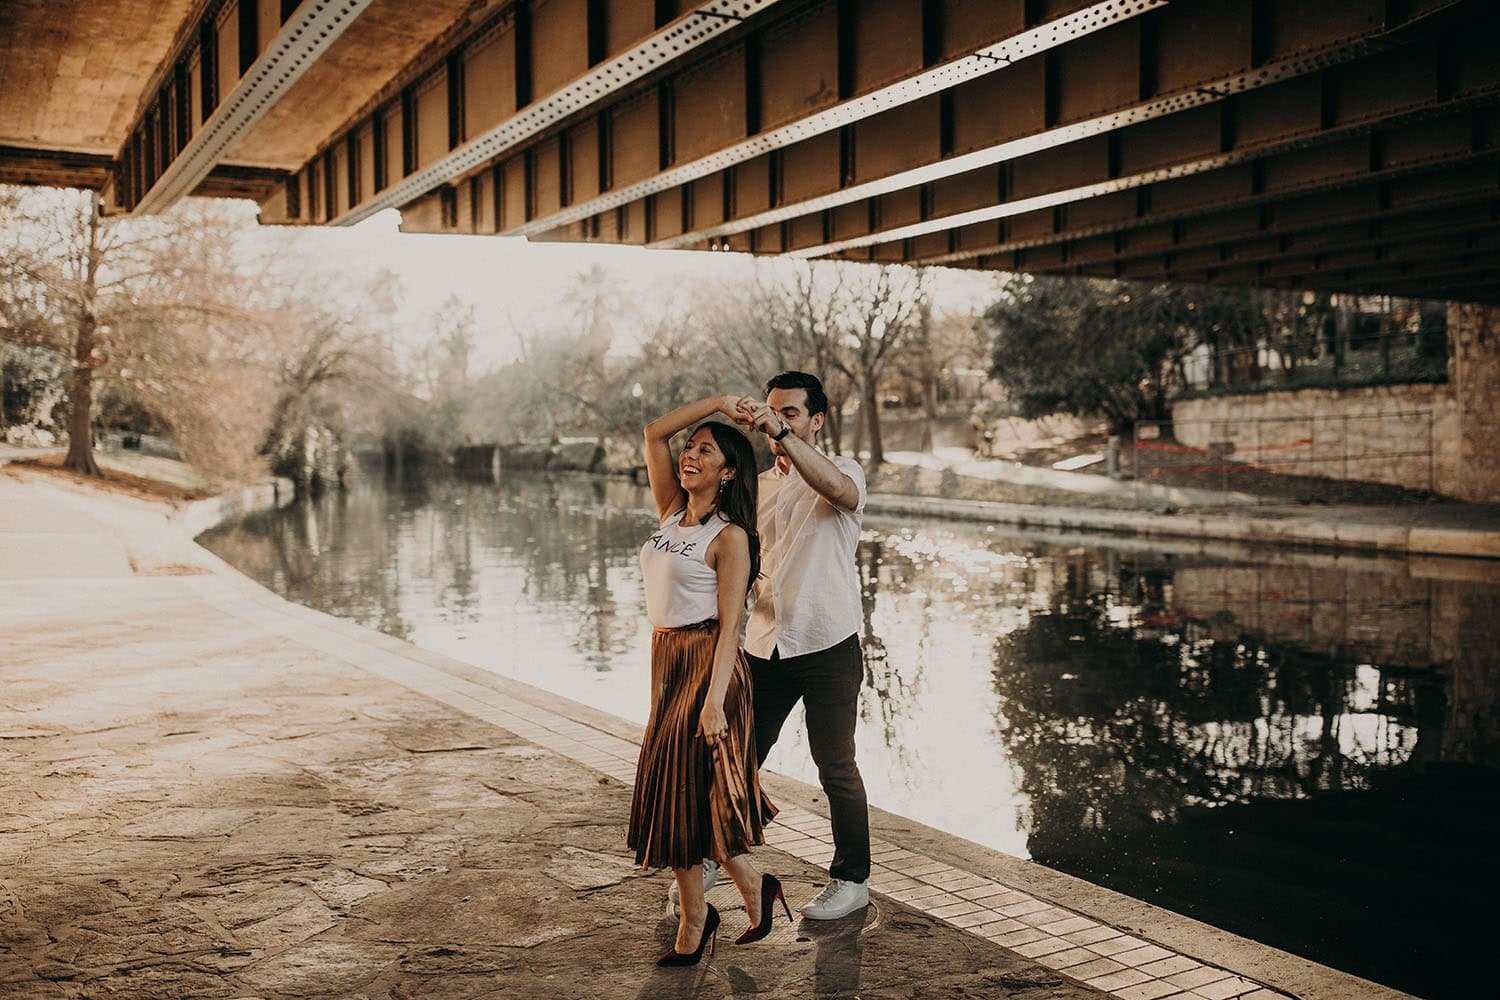 A male twirls female around as they dance under a bridge near a river in Austin, Texas. They are both smiling. Photograph by Austin, Texas wedding photographer Nikk Nguyen.